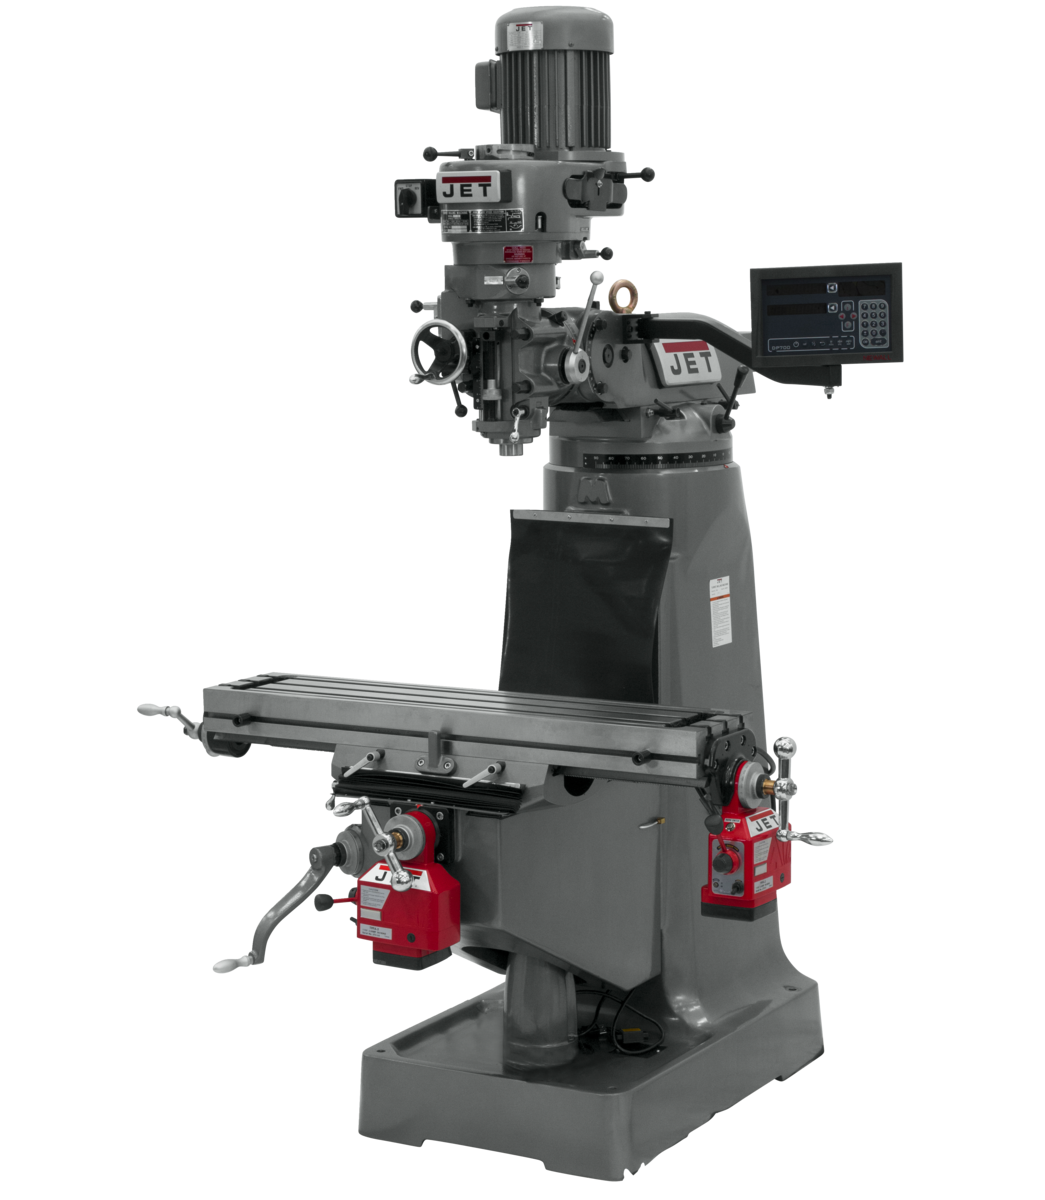 JTM-2 Mill With 3-Axis Newall DP700 DRO (Quill) With X and Y-Axis Powerfeeds